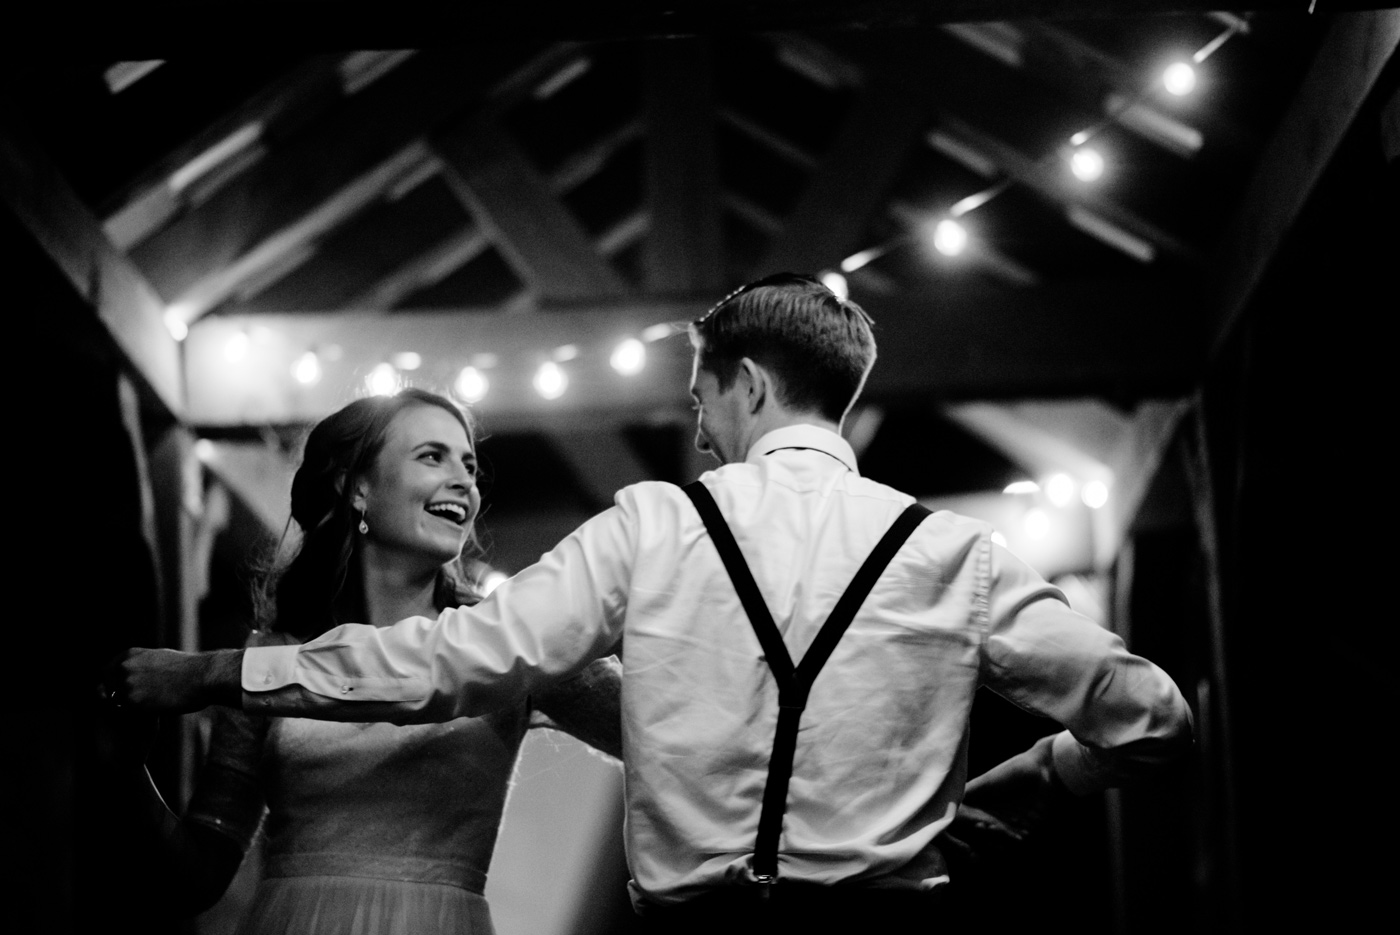 bride and groom dance alone at the end of the night